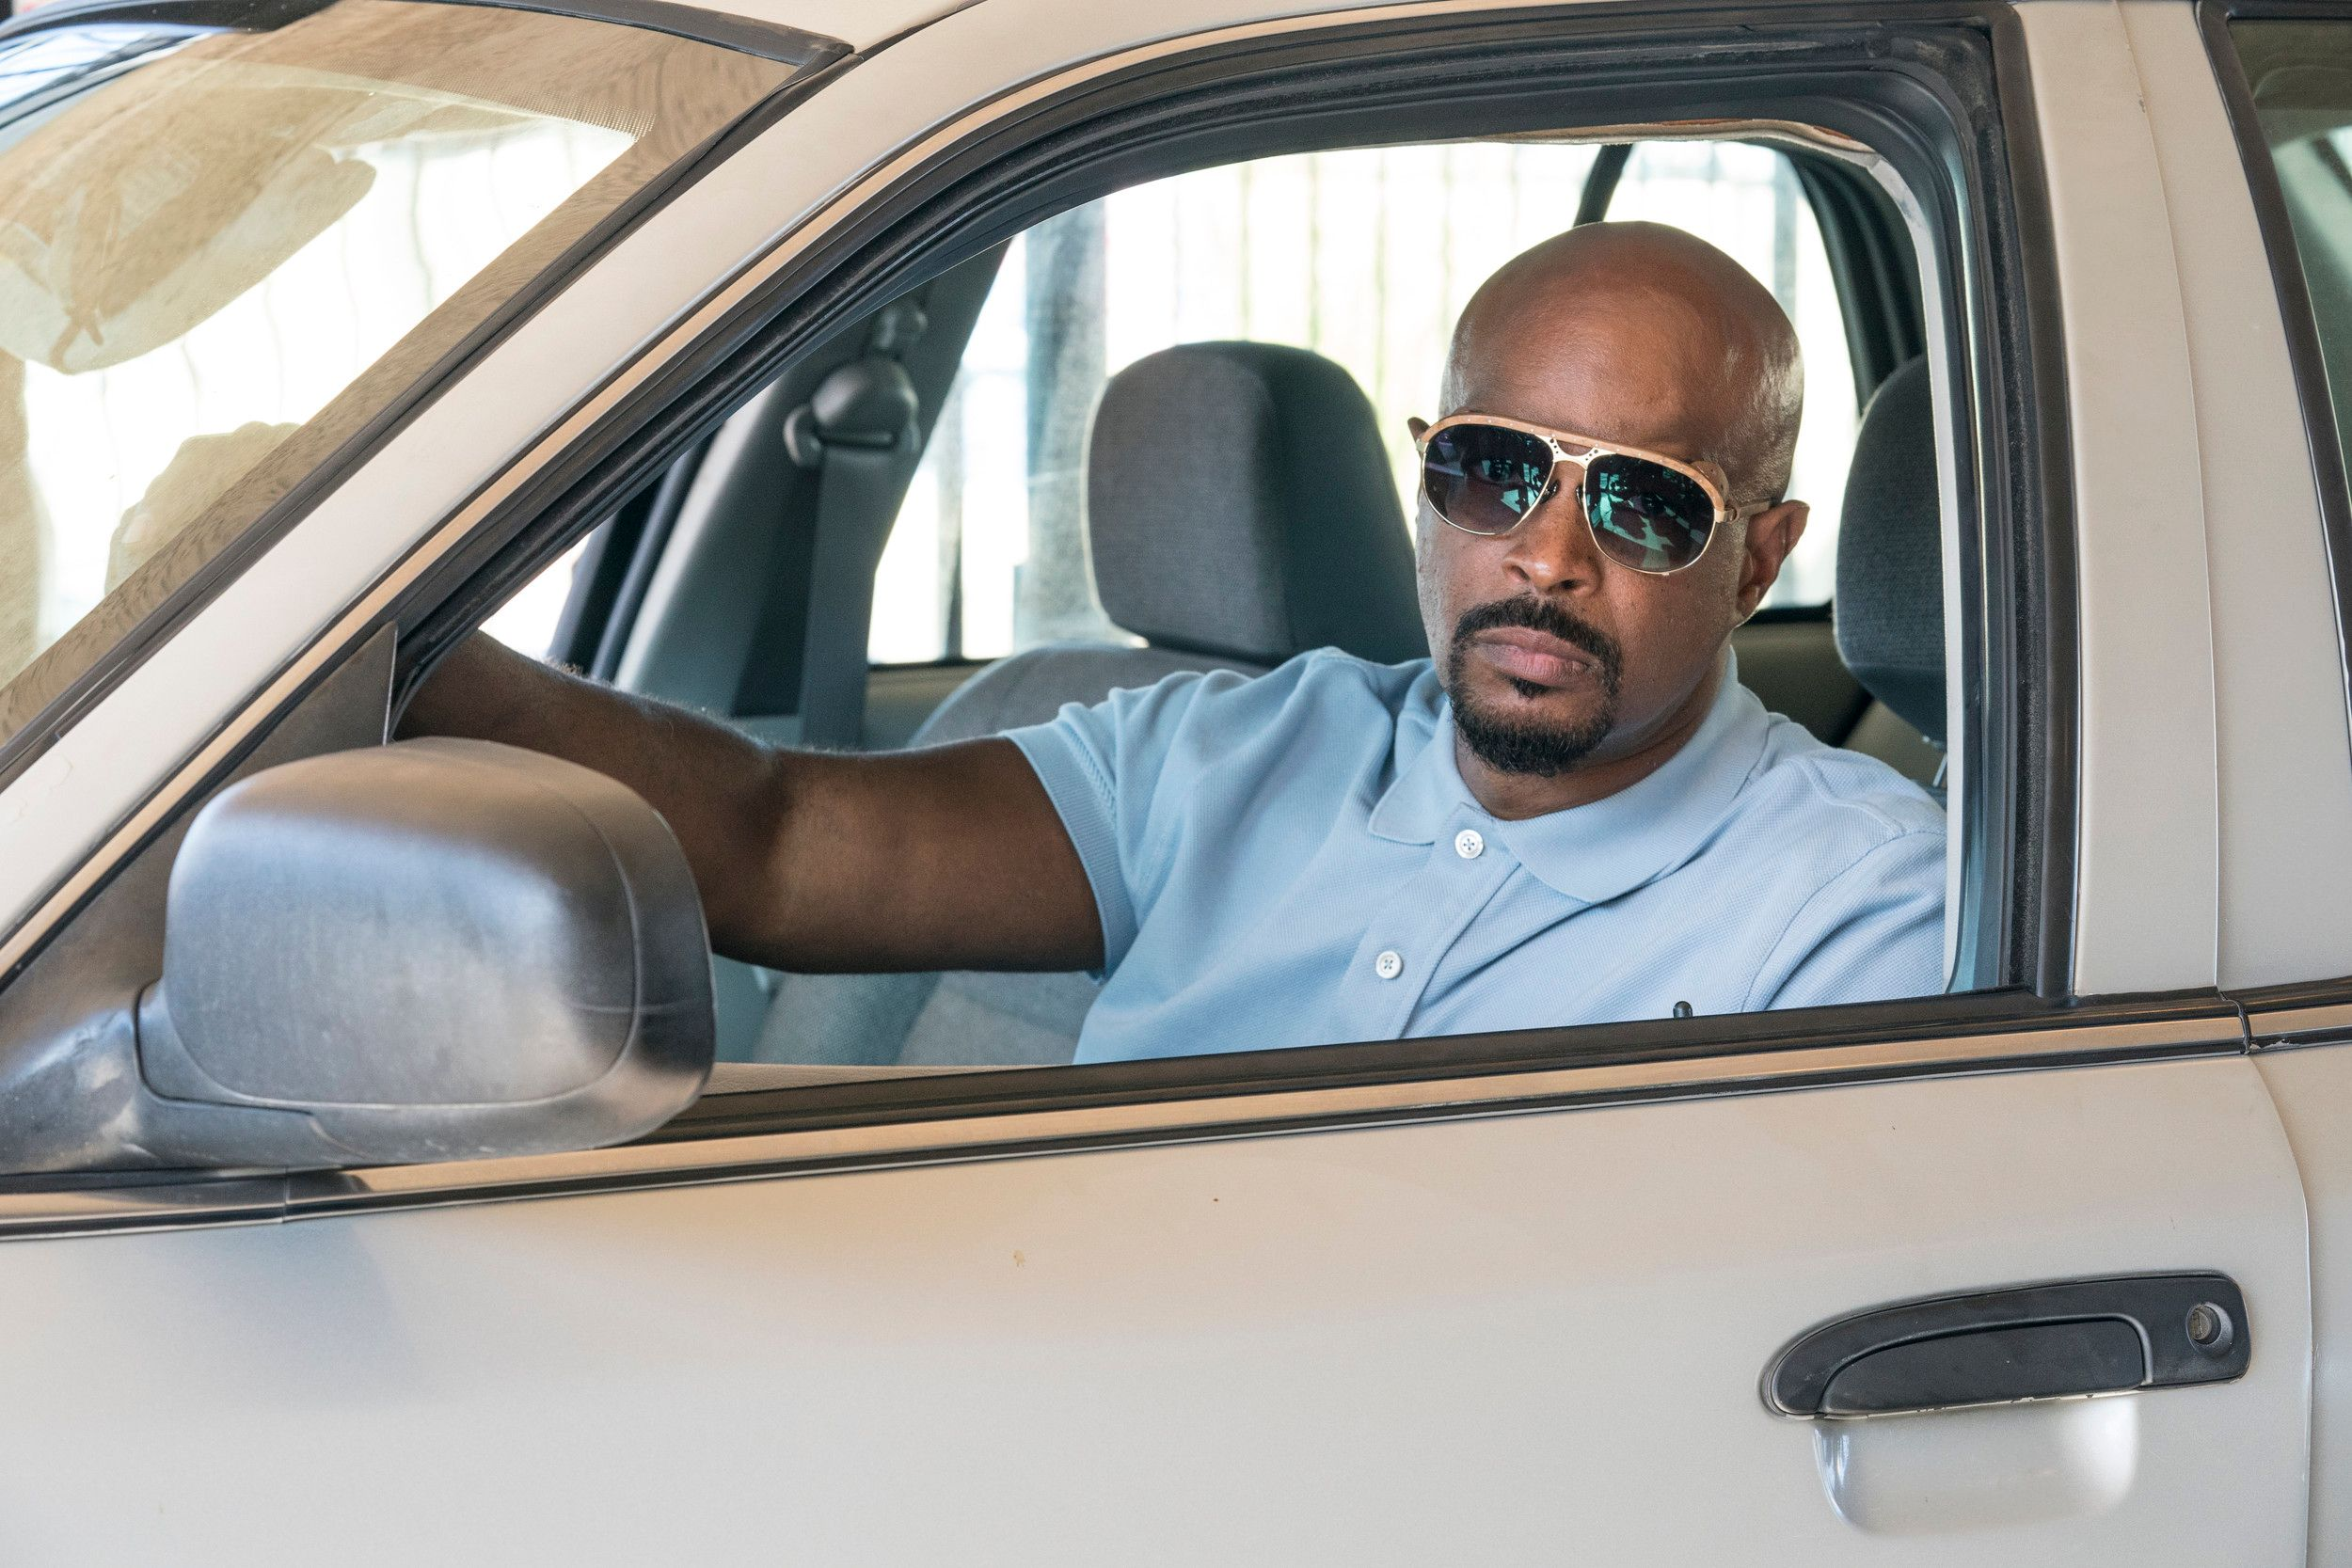 Damon Wayans says 'I'm done,' announcing he is quitting Lethal Weapon